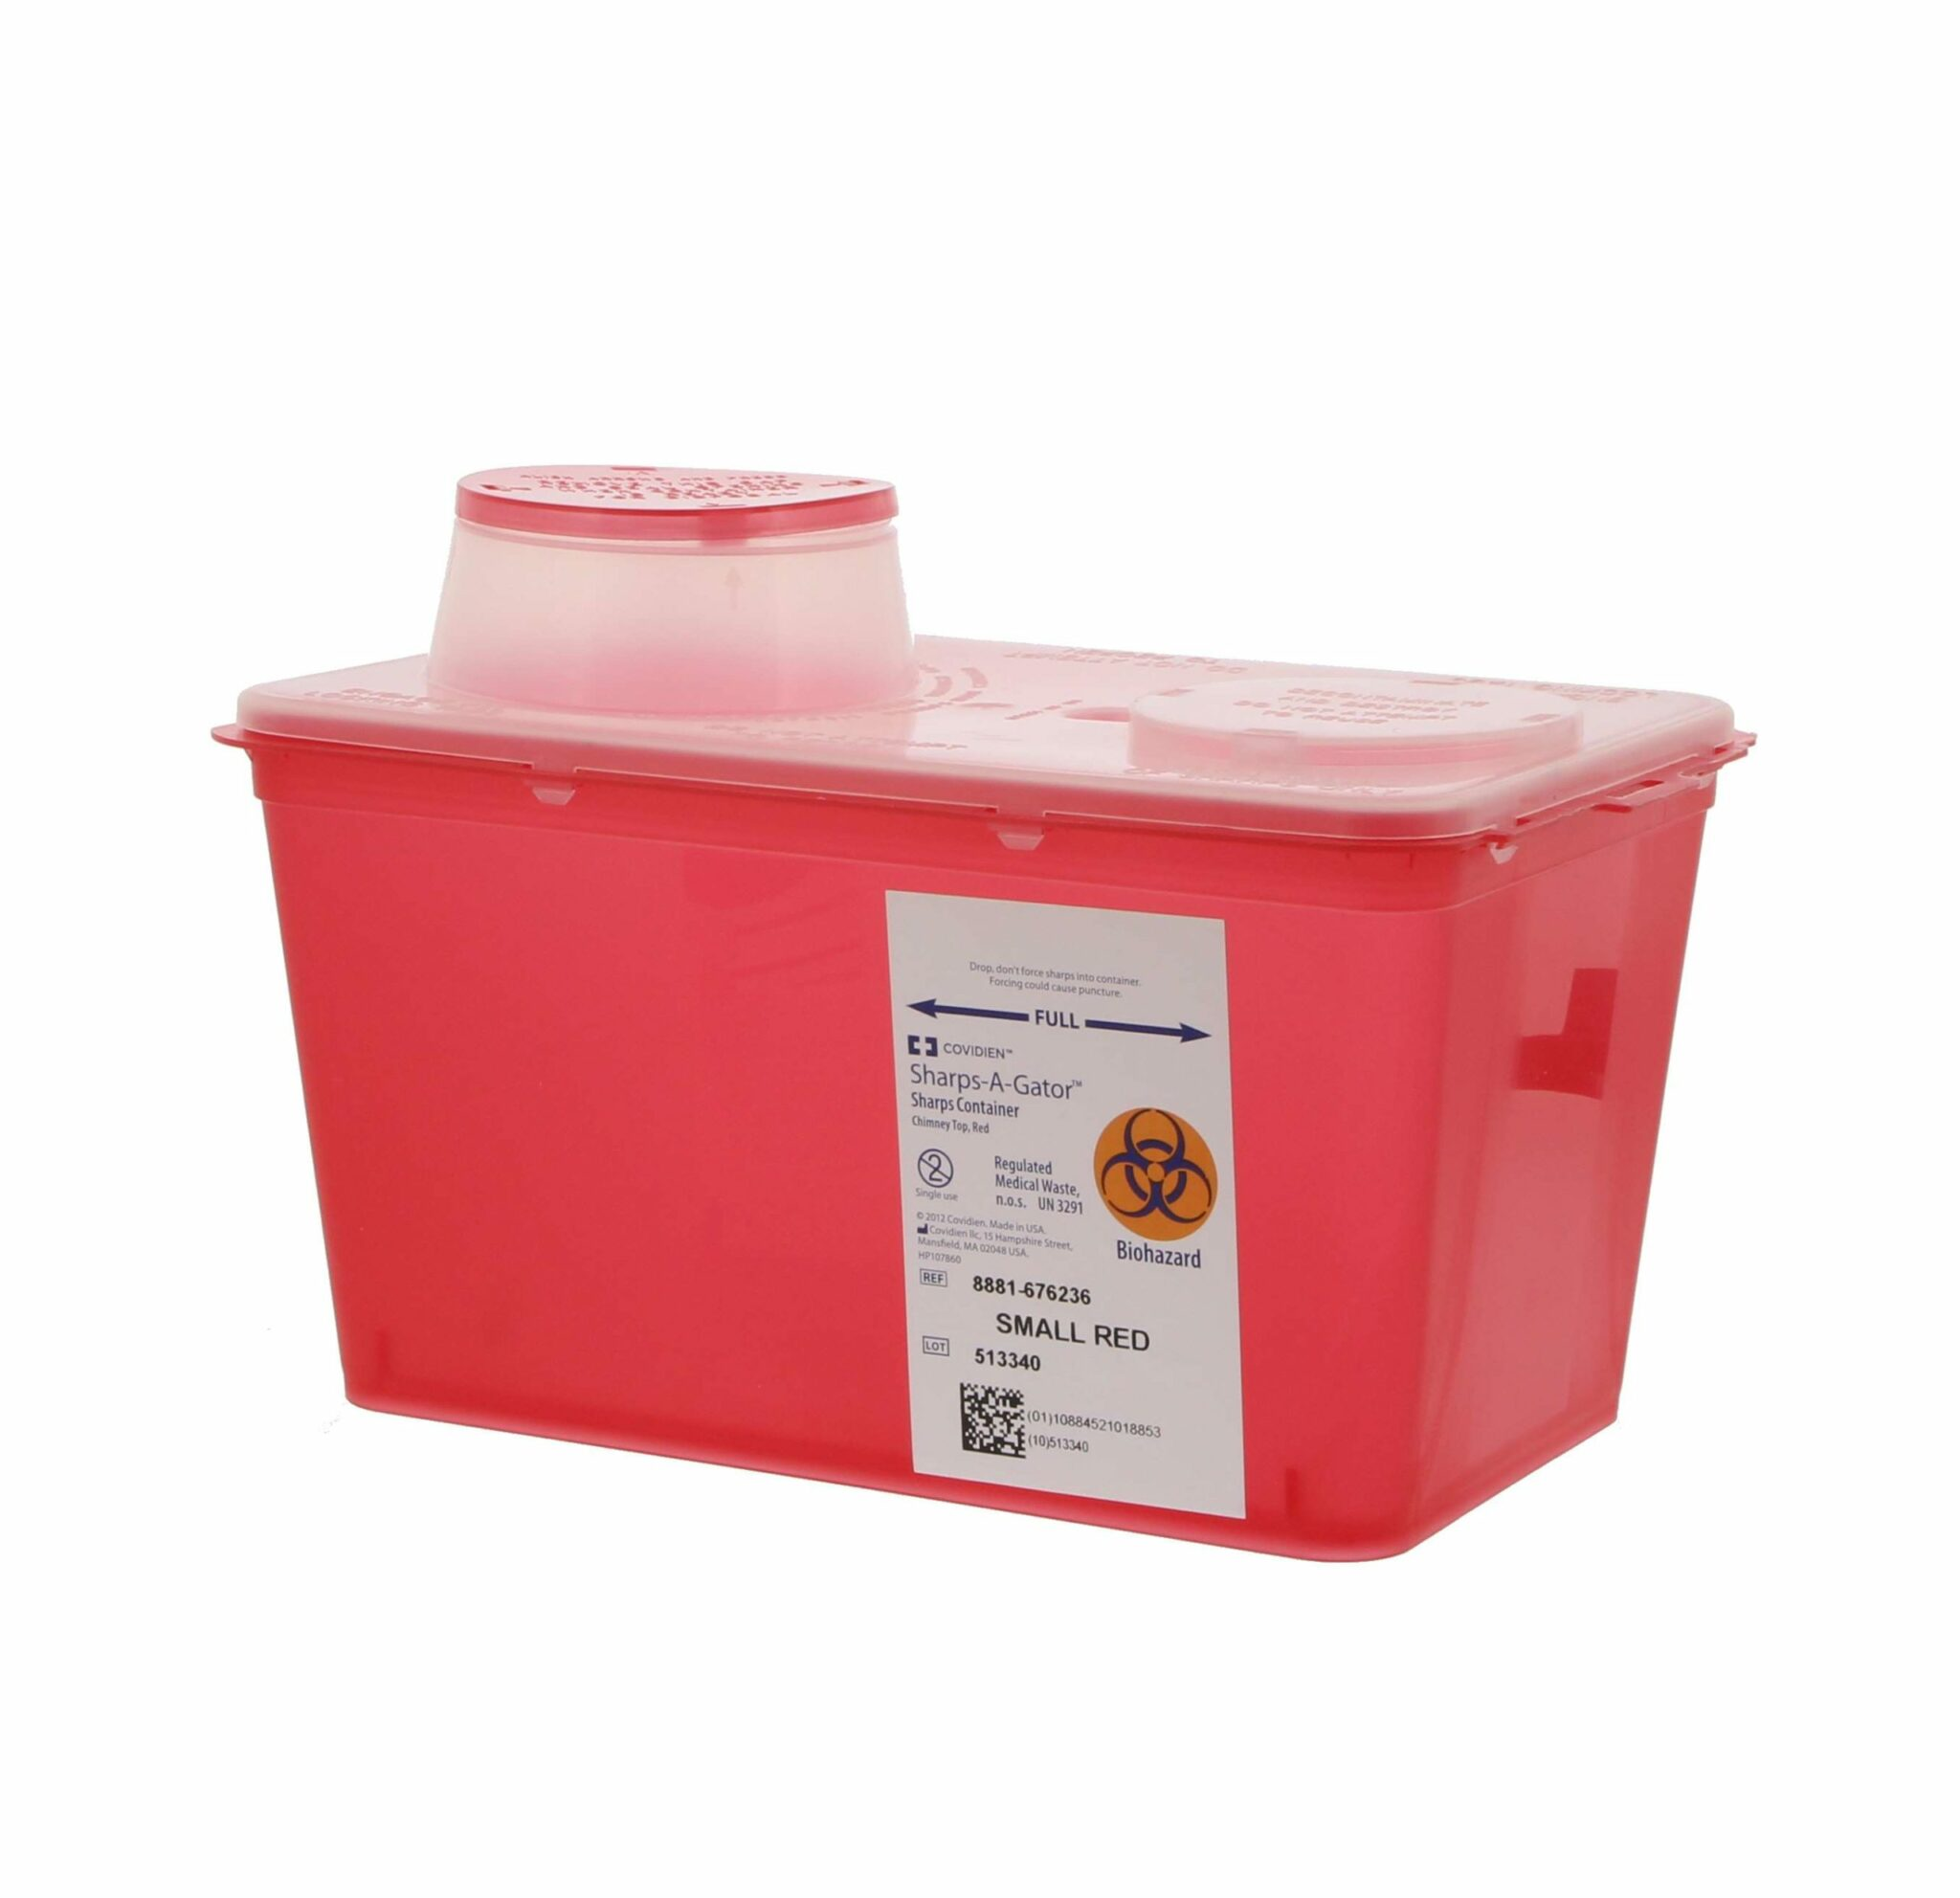 MONOJECT SHARPS CONTAINER RED SMALL 4 Qt #8881676236